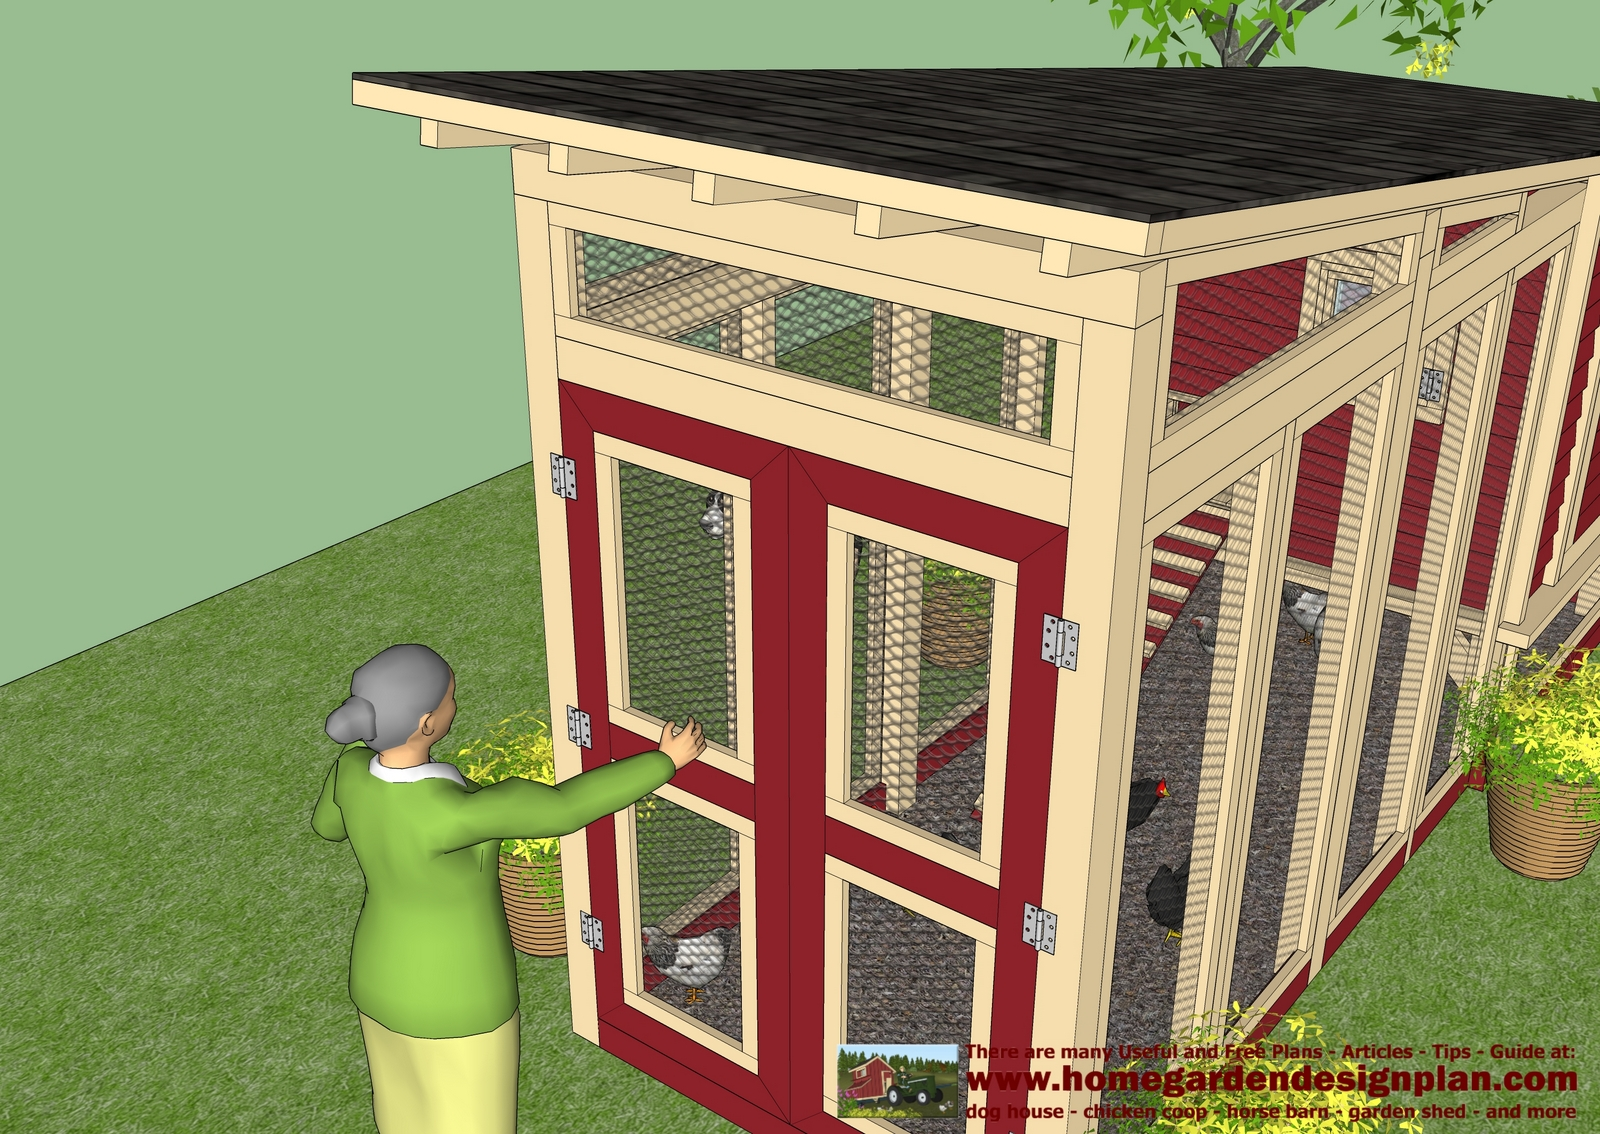 Hen 39 s knowing 10 chicken coop plans free for Plans for chicken coops